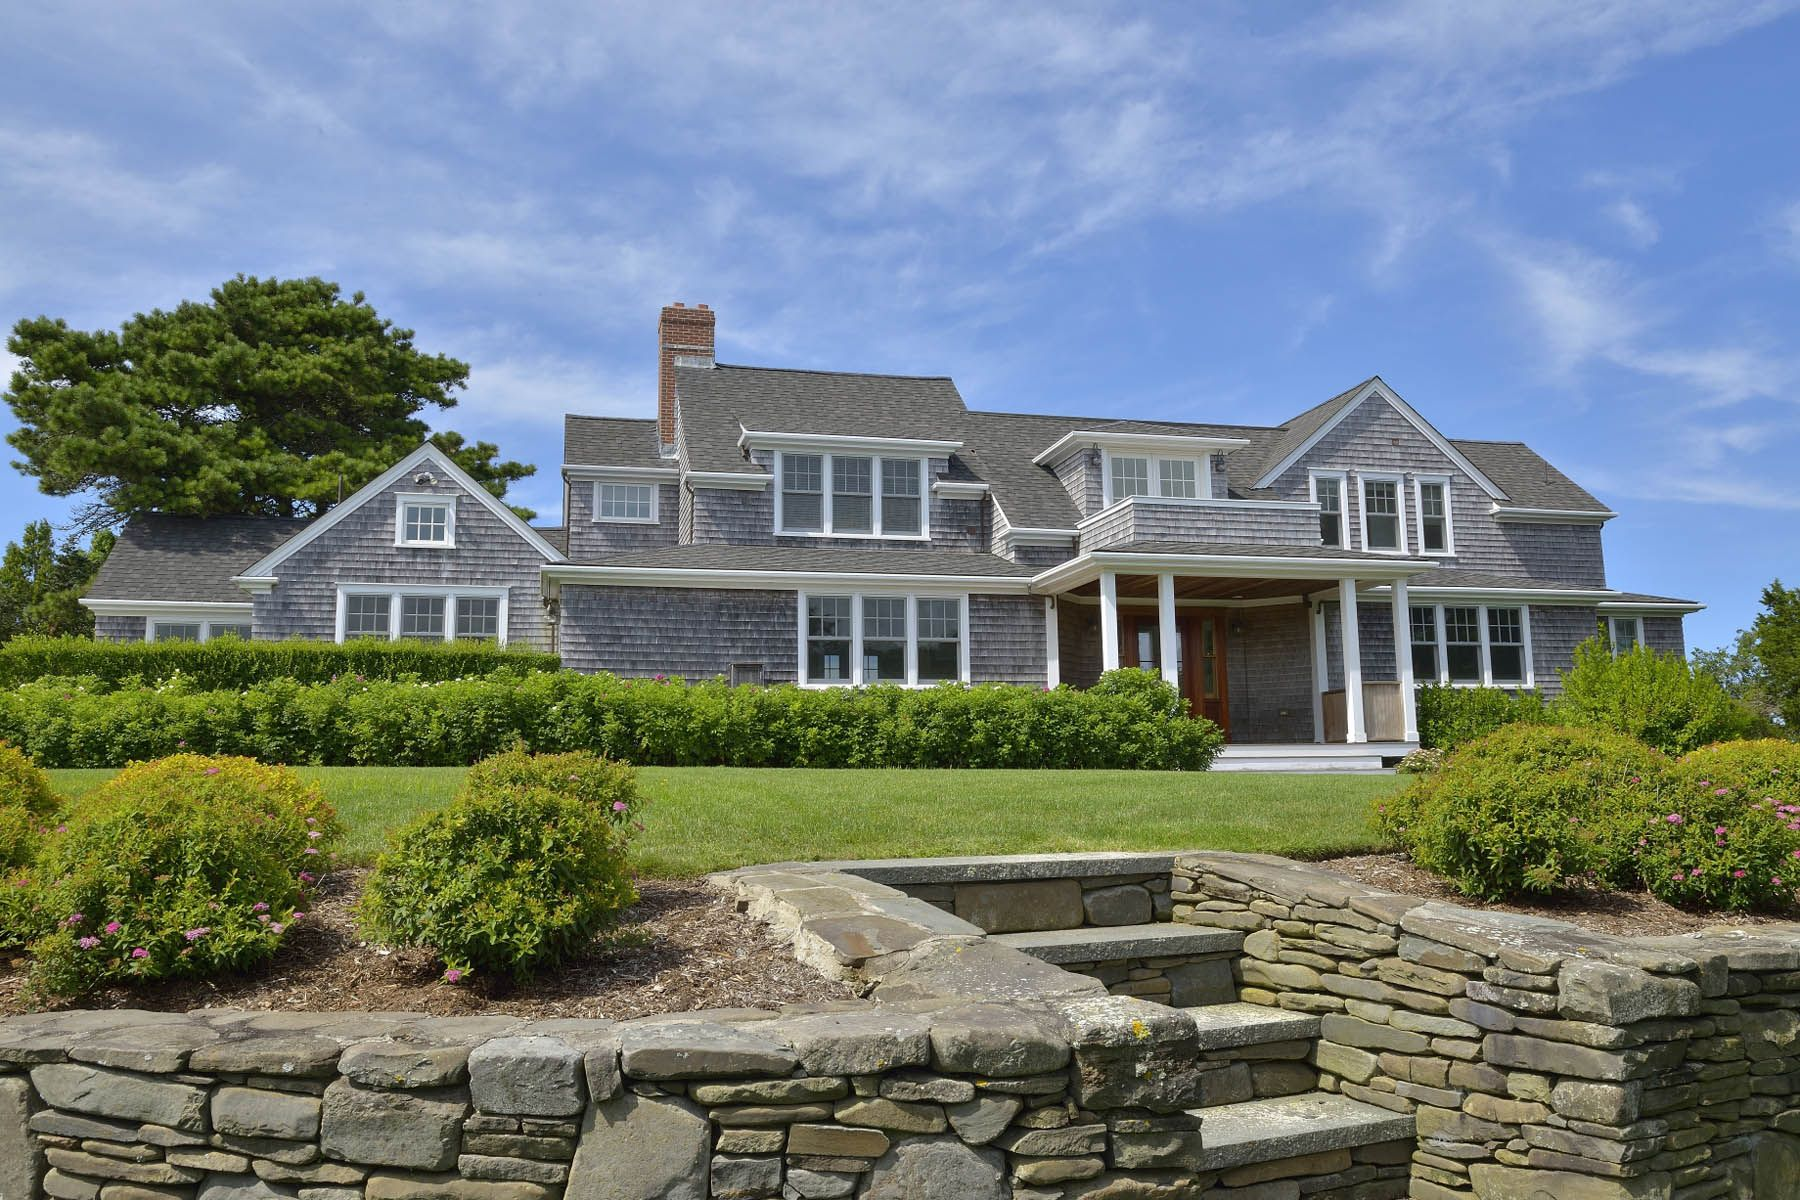 Single Family Home for Sale at Expansive Harbor Views on 3 Plus Acres 133 Polpis Road Nantucket, Massachusetts, 02554 United States